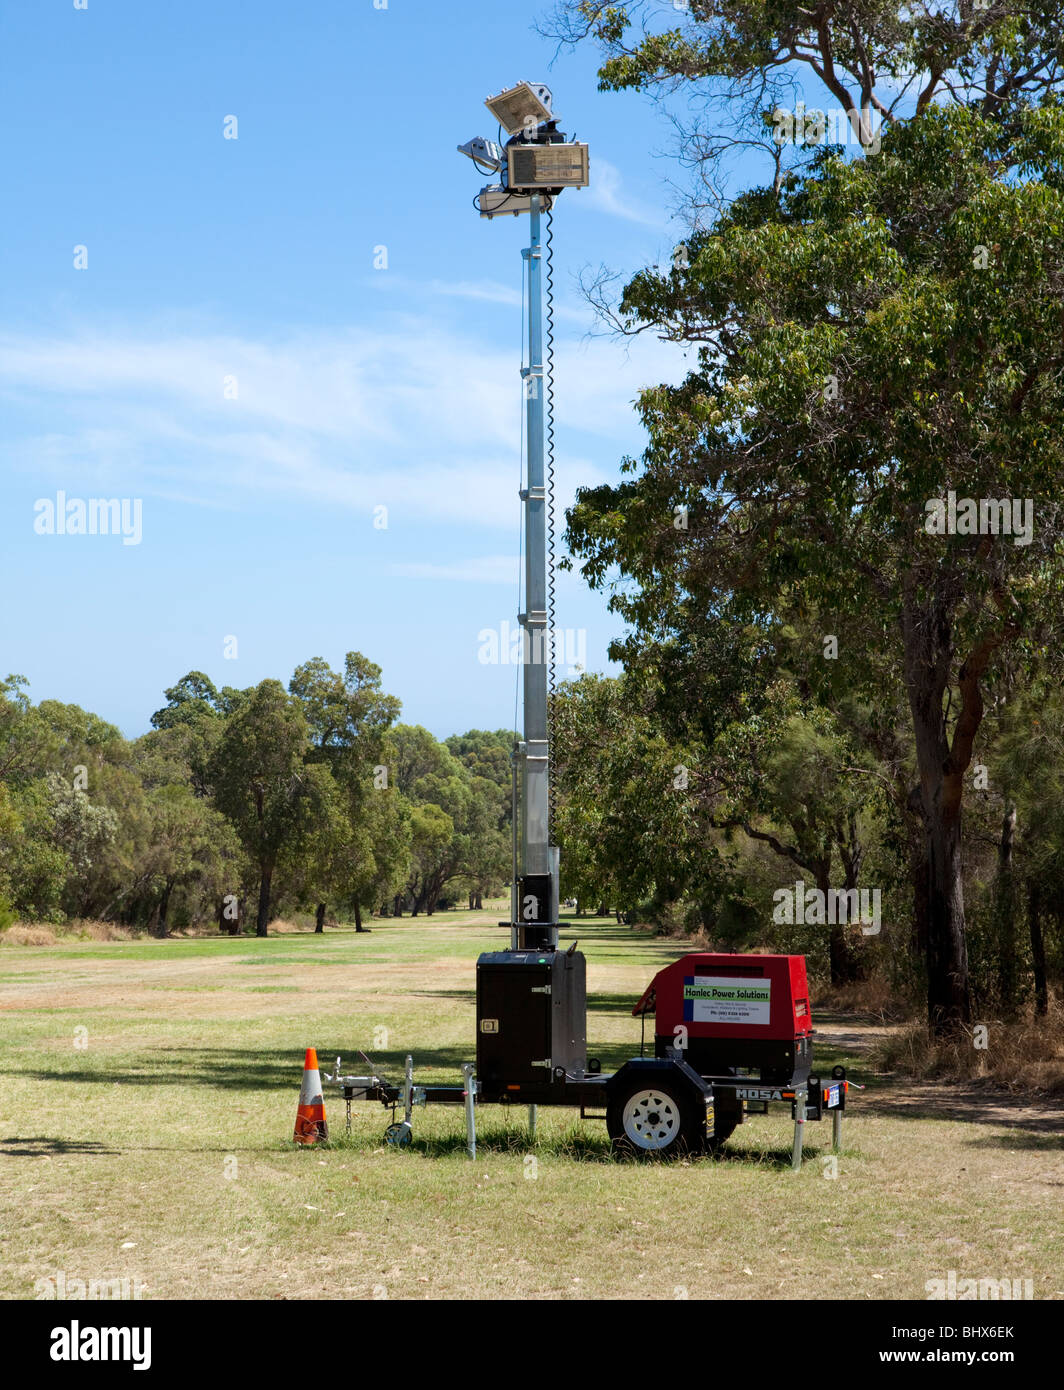 Portable lighting tower and generator - Stock Image